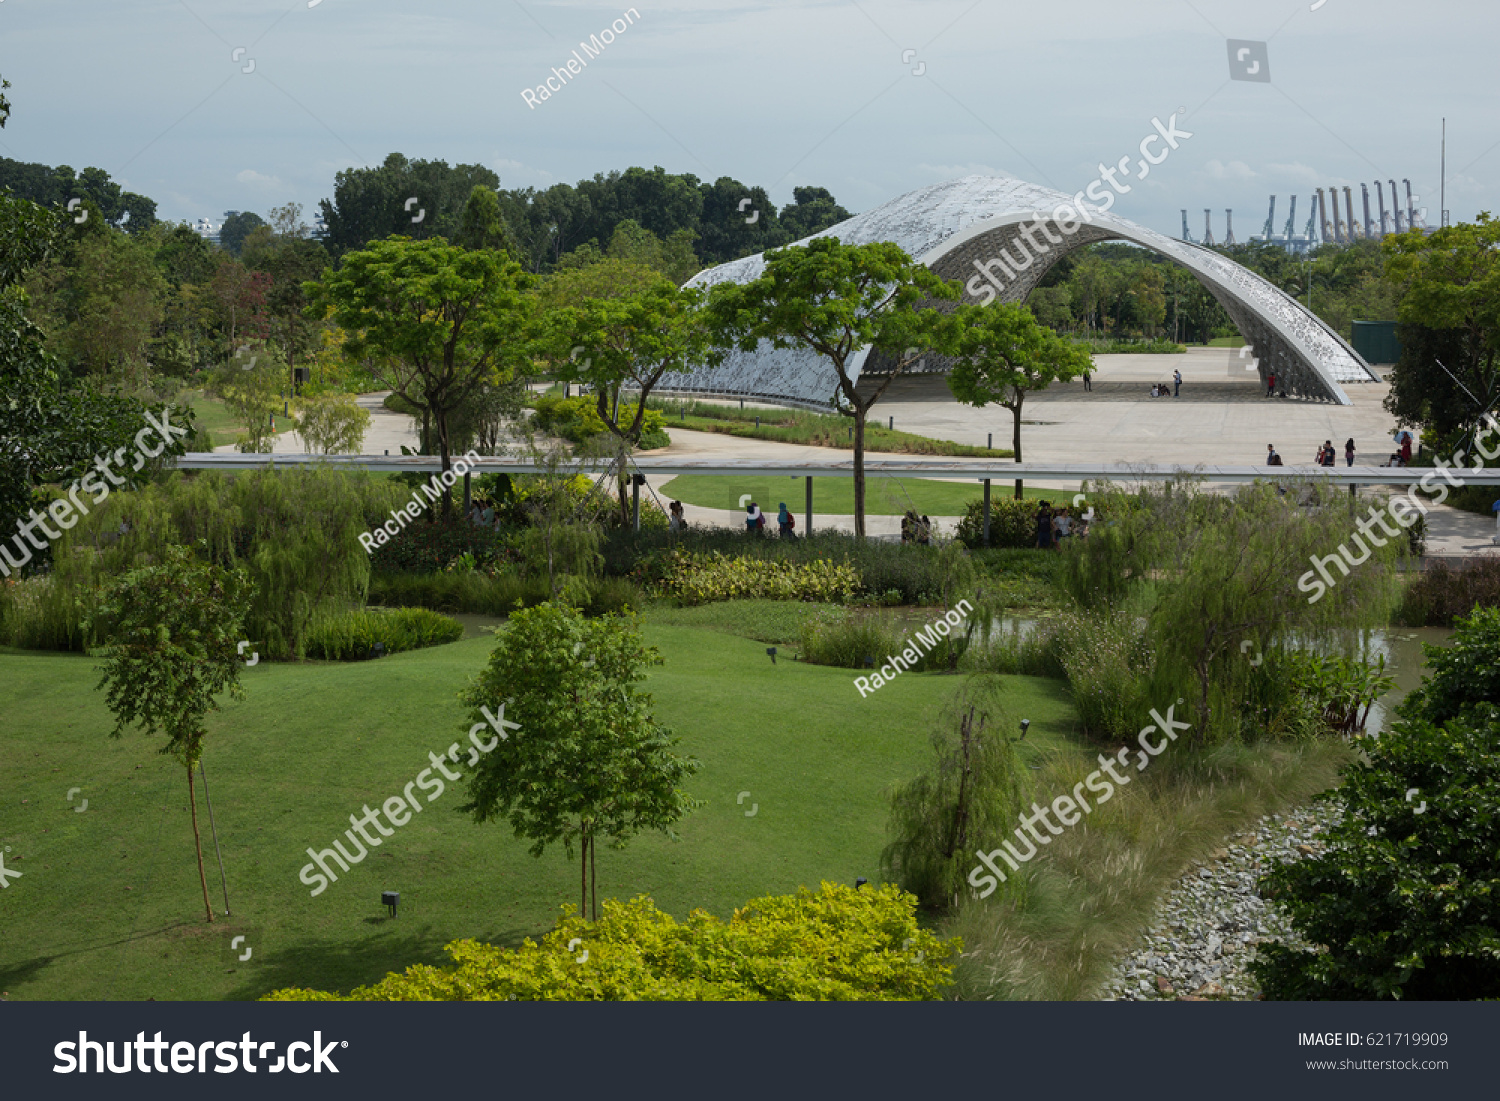 singapore apr 2 2017 future of us exhibition pavilion - Garden By The Bay Exhibition